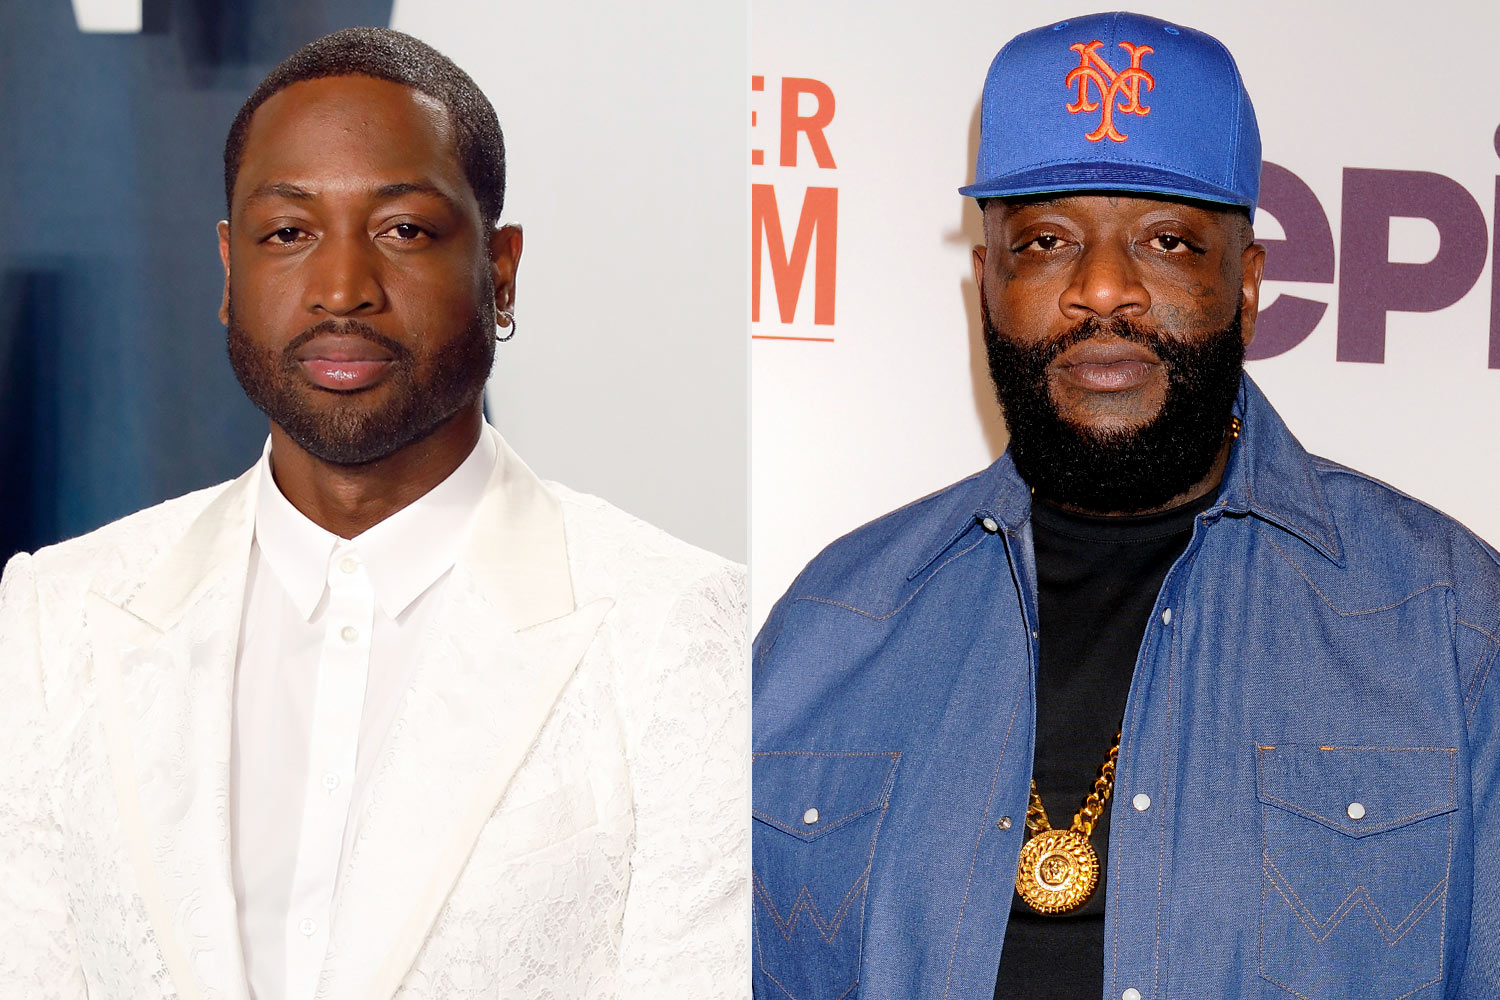 Dwyane wade and Rick Ross